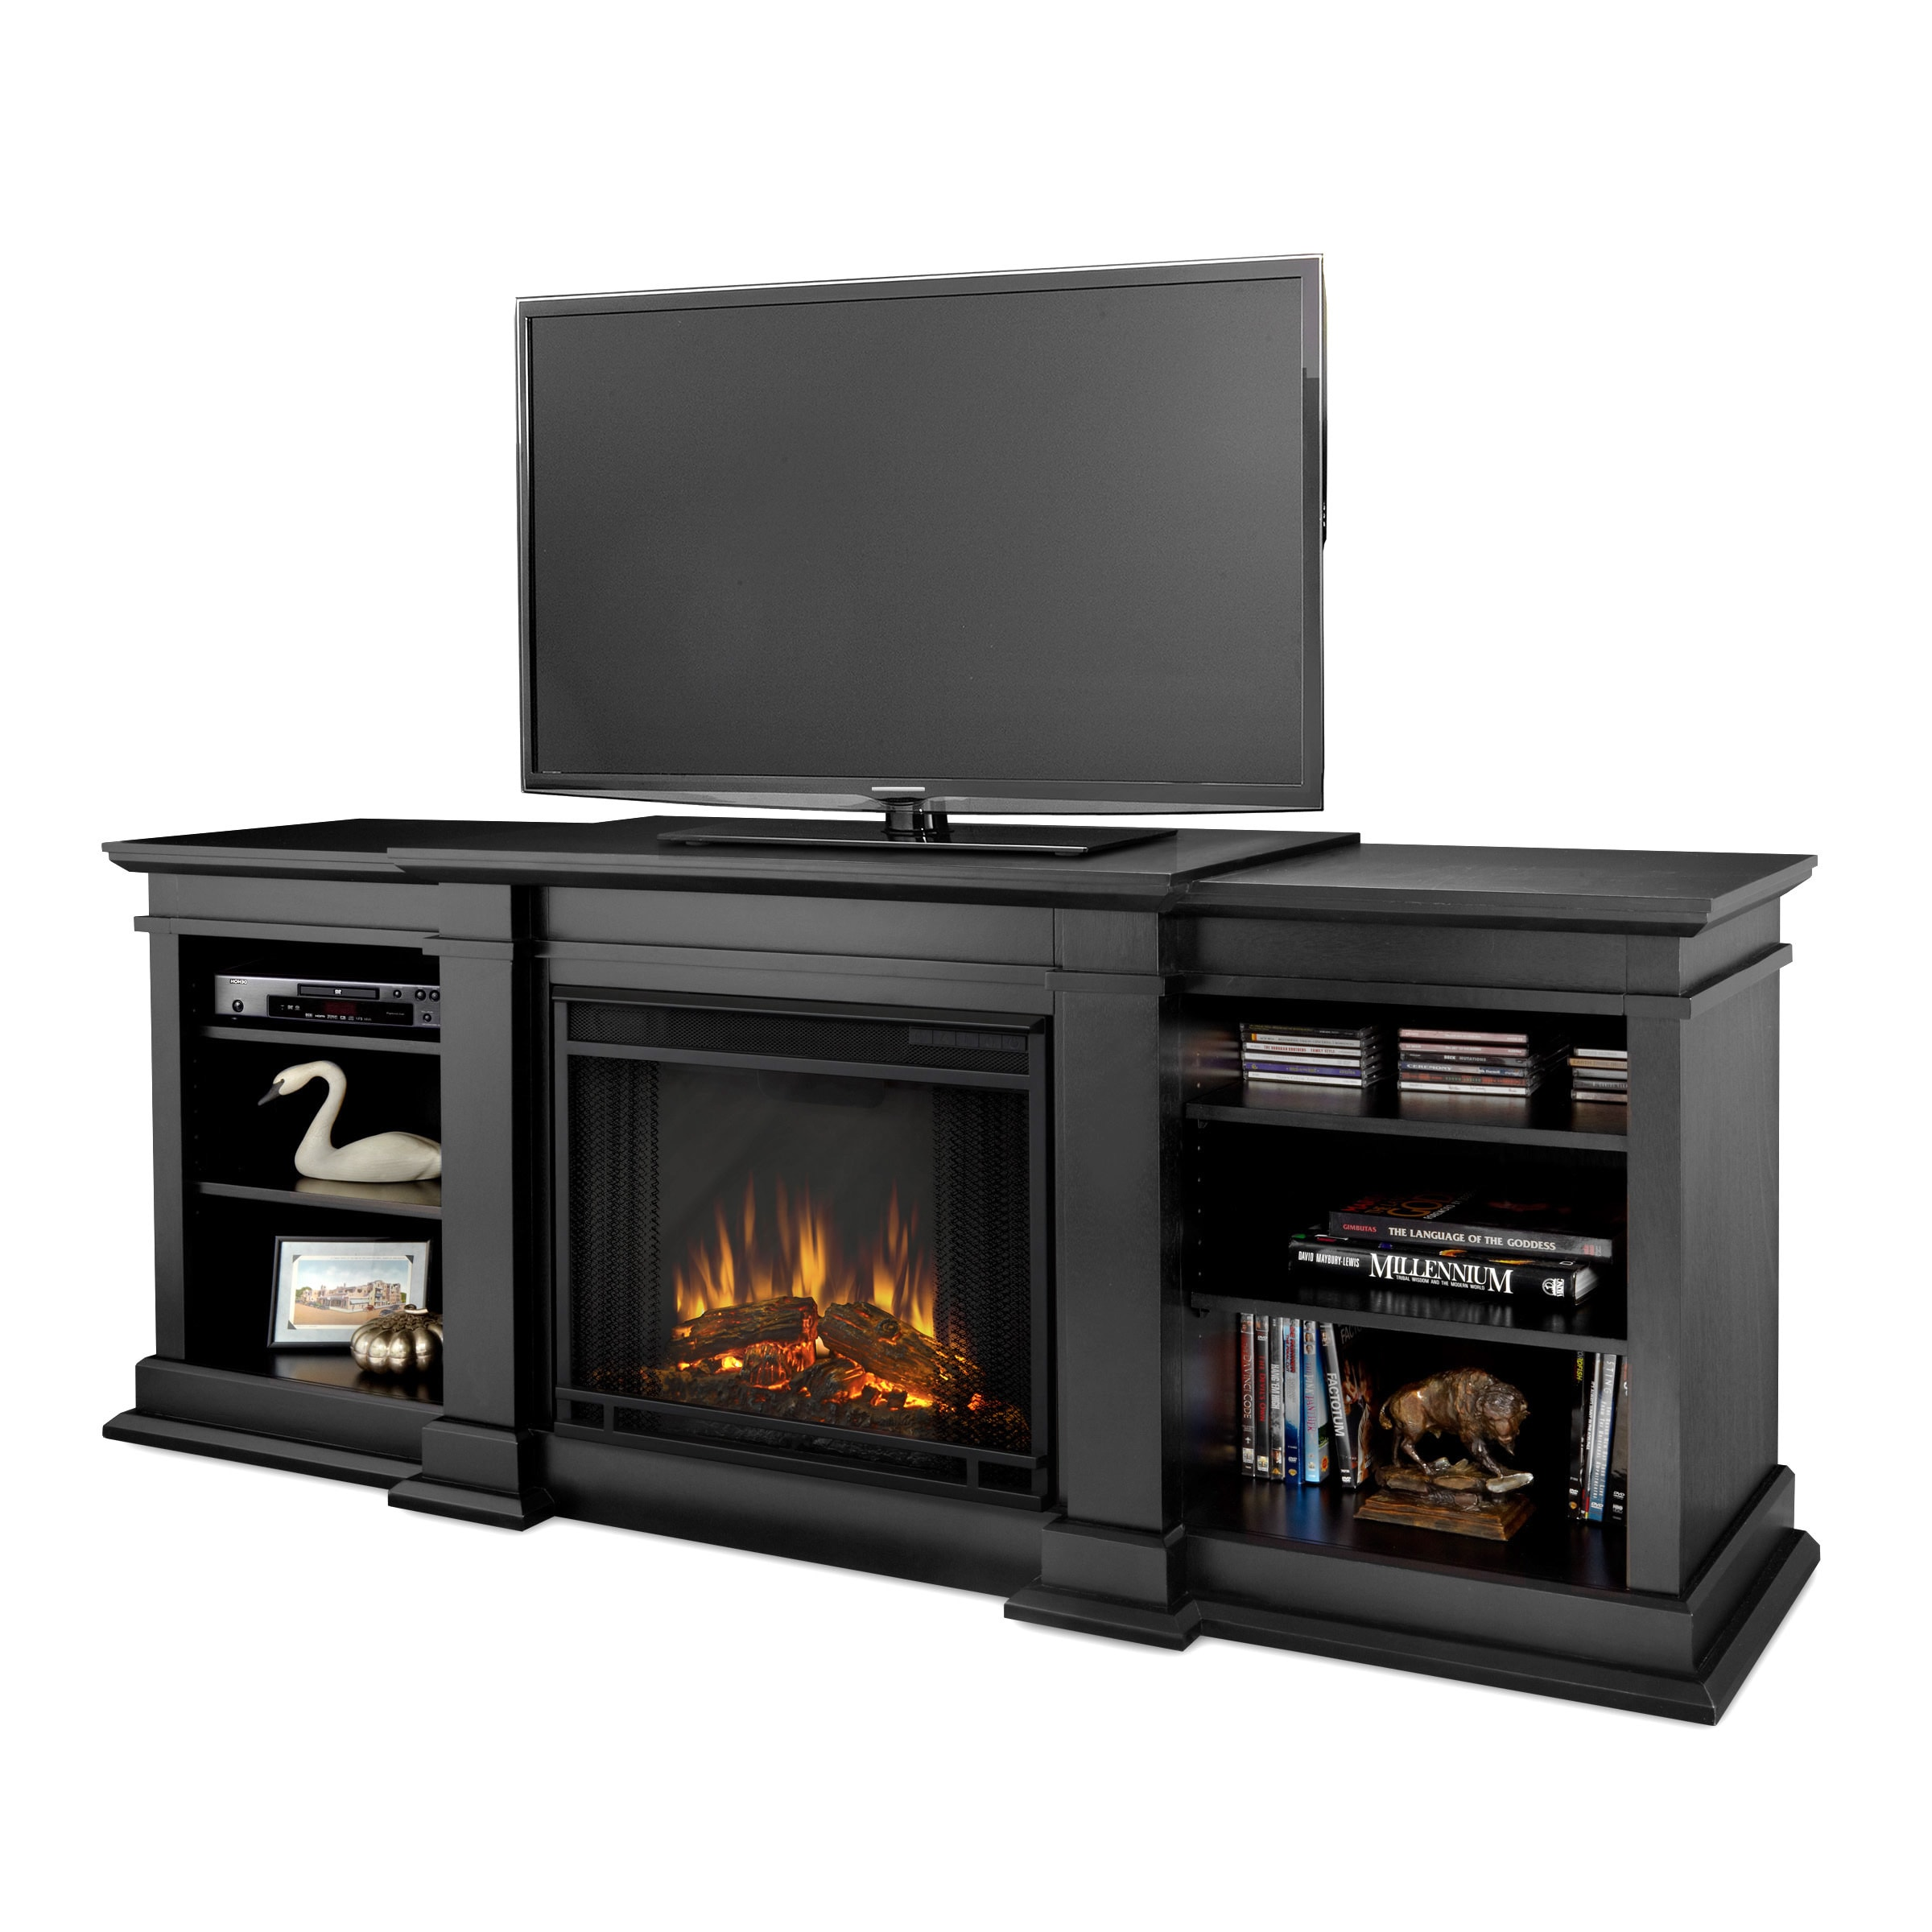 Real Flame Black Fresno Electric Fireplace at Sears.com